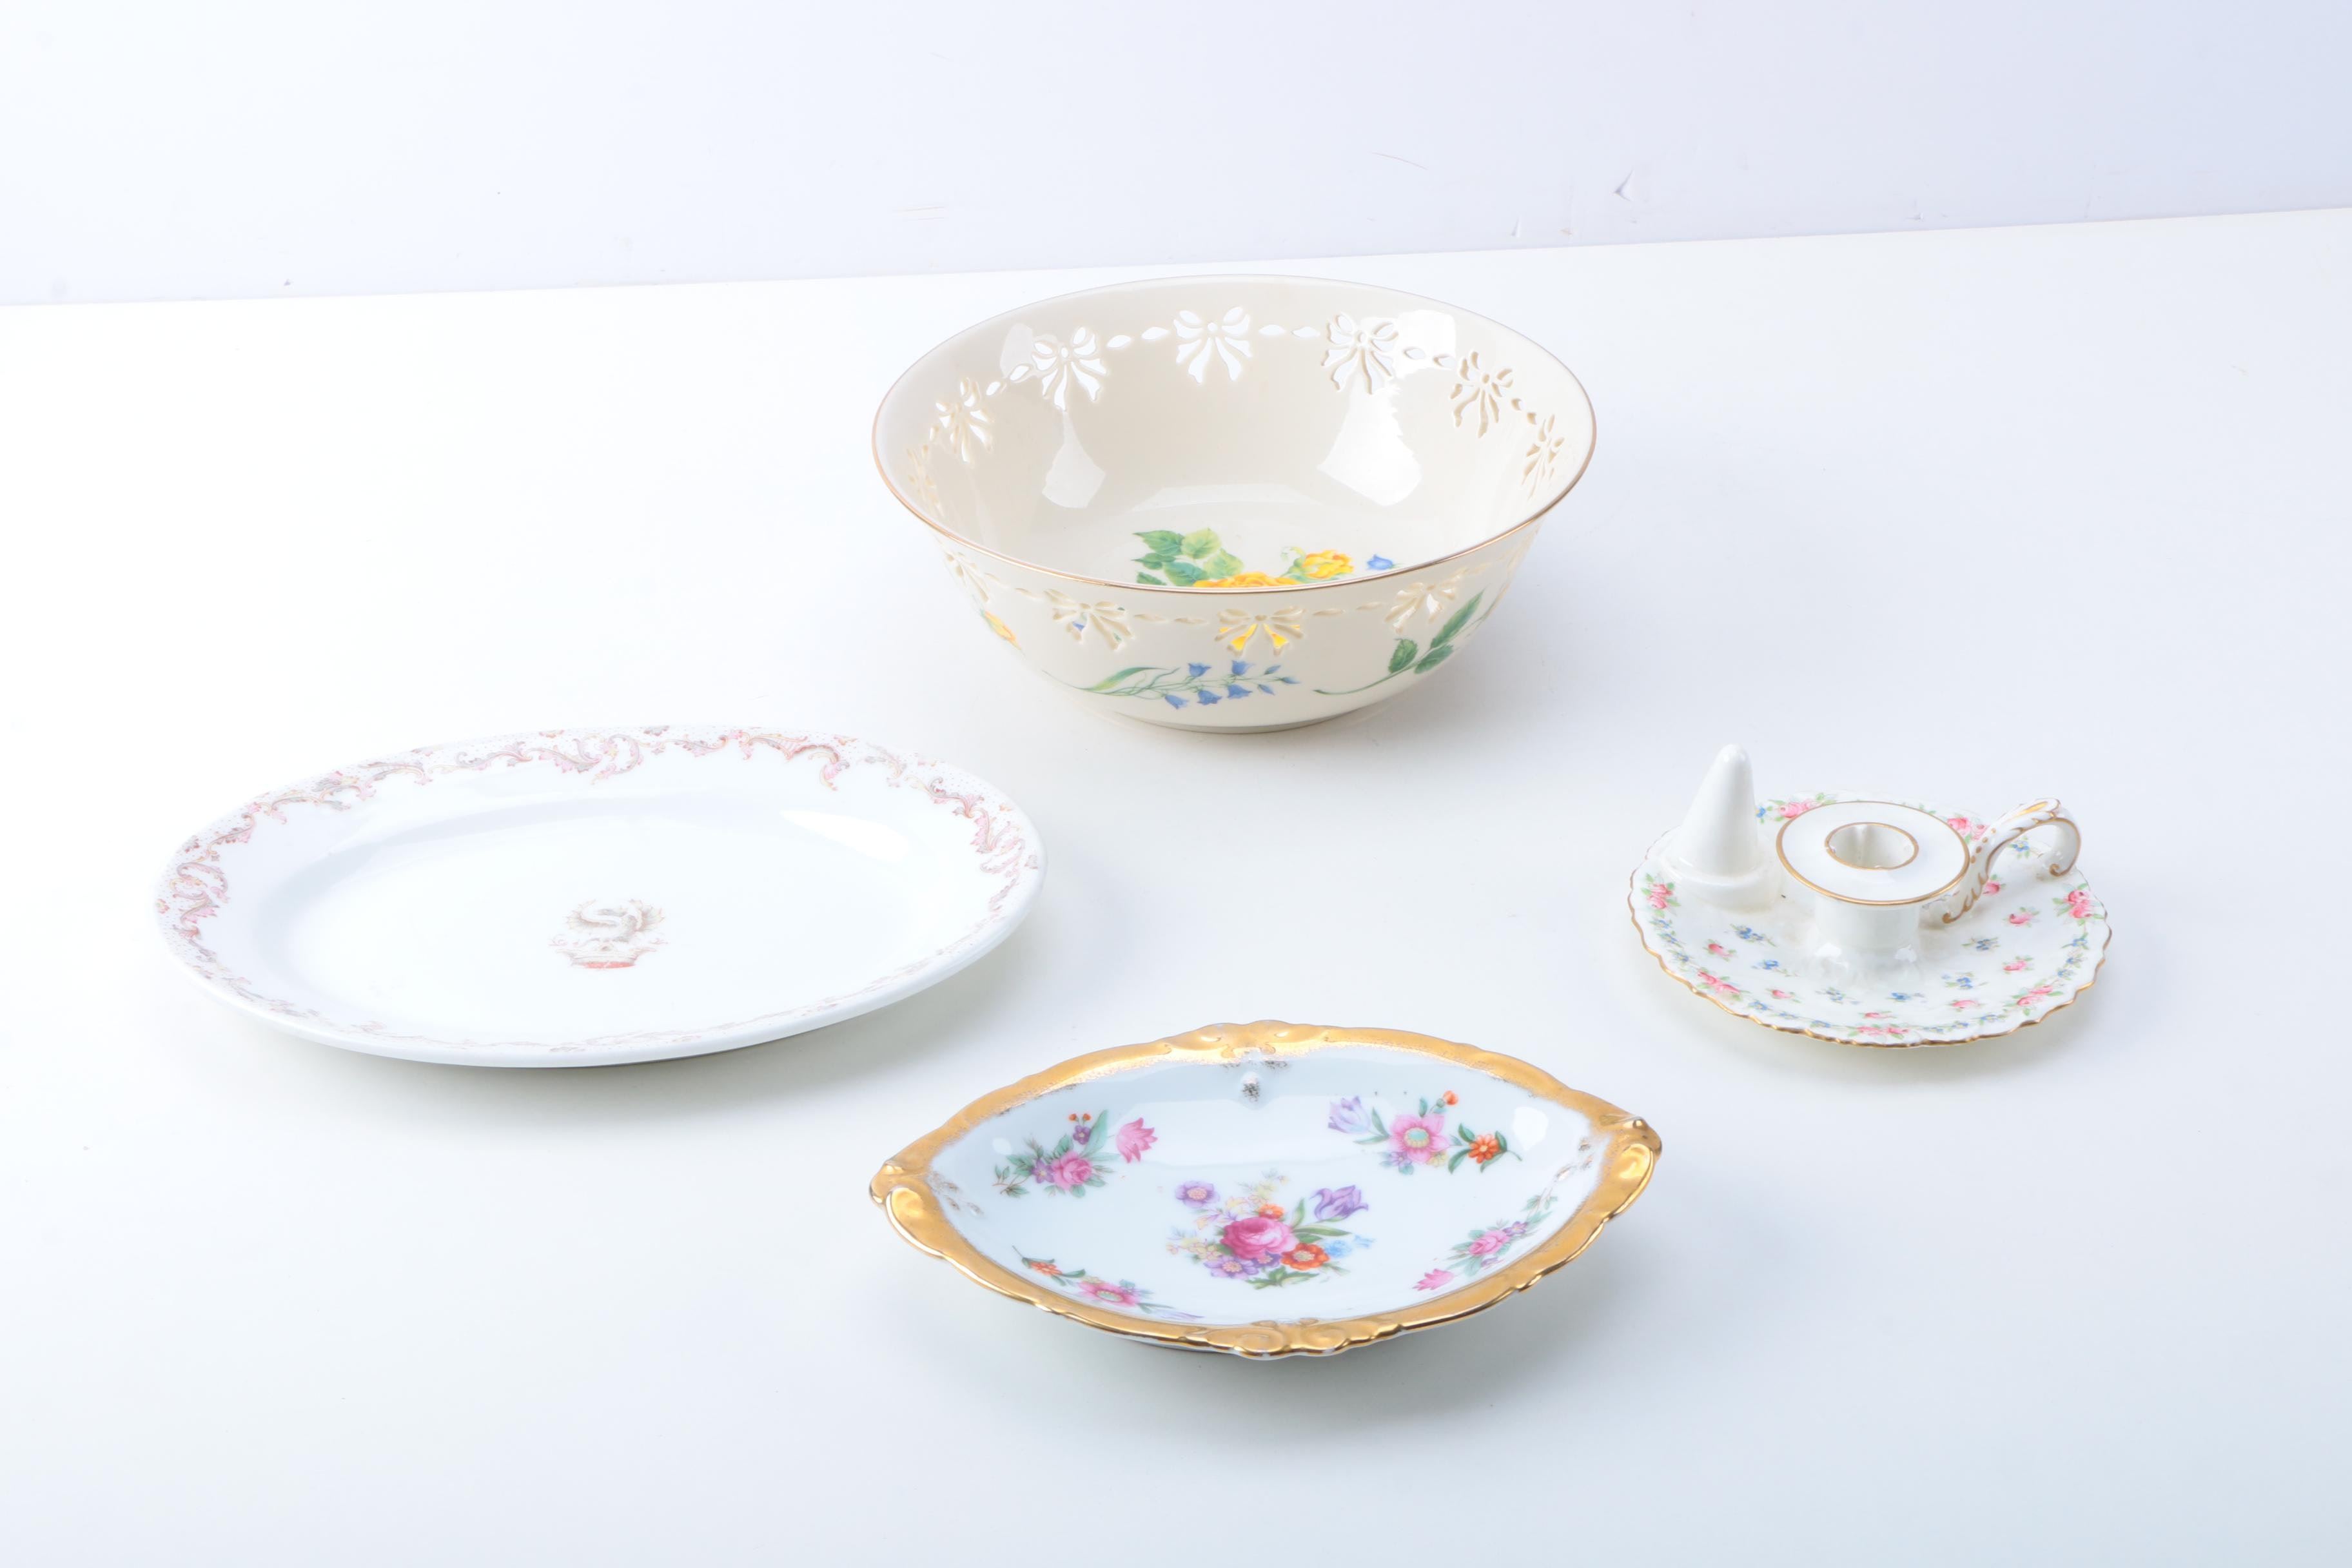 Porcelain Tableware and Decor Featuring Haviland